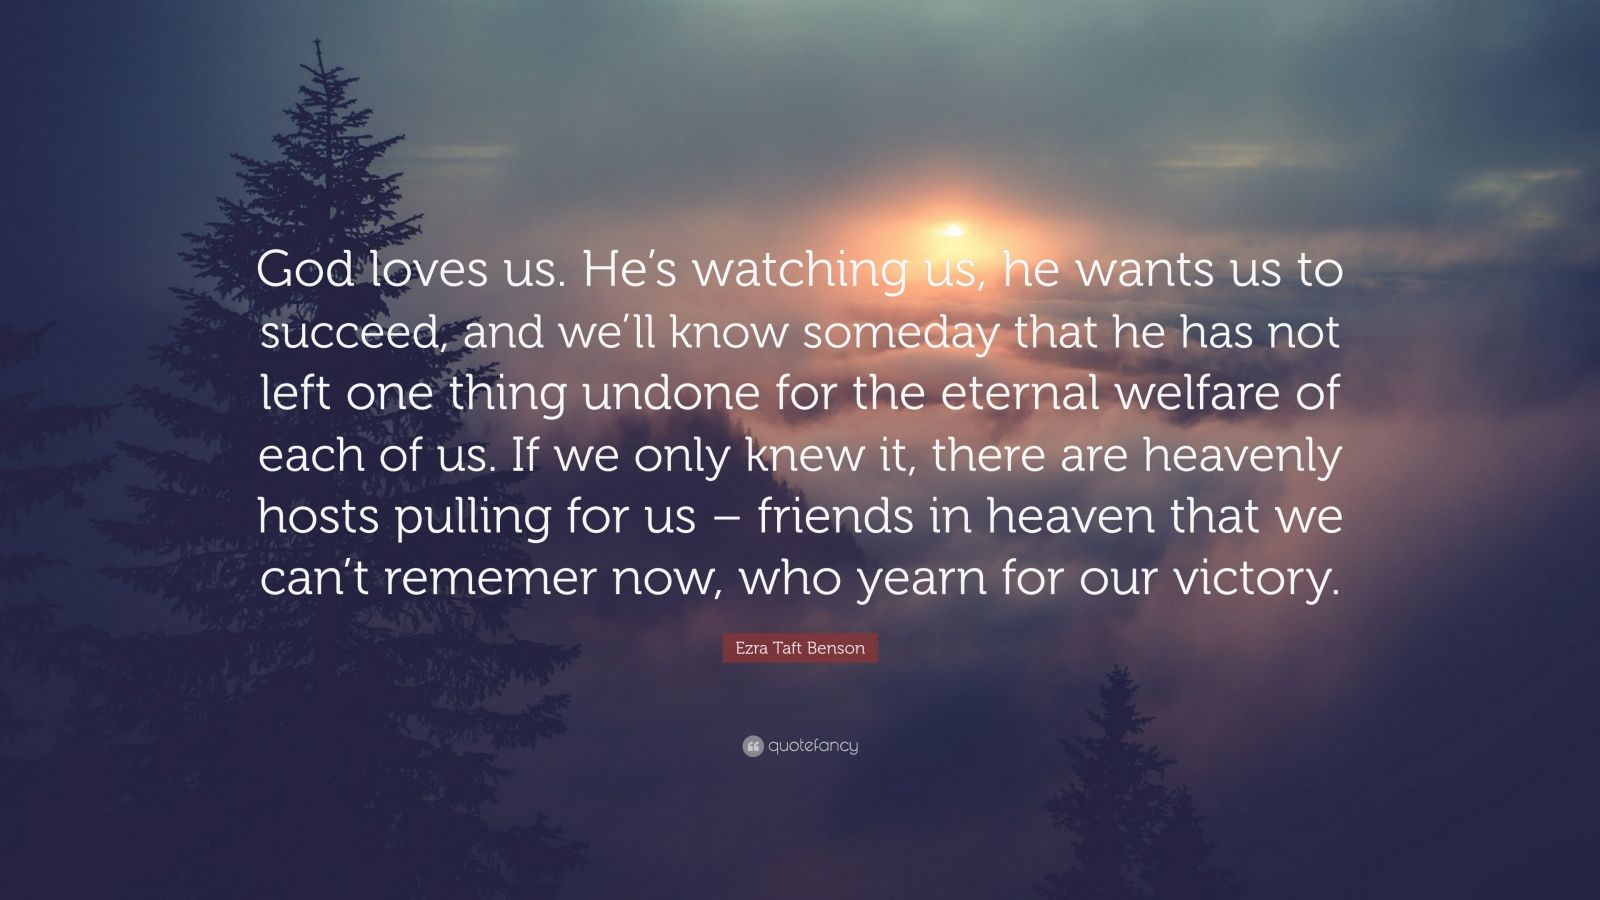 """Ezra Taft Benson Quote: """"God loves us. He's watching us, he wants us to succeed, and we'll know someday that he has not left one thing undone for the eternal welfare of each of us. If we only knew it, there are heavenly hosts pulling for us – friends in heaven that we can't rememer now, who yearn for our victory."""""""